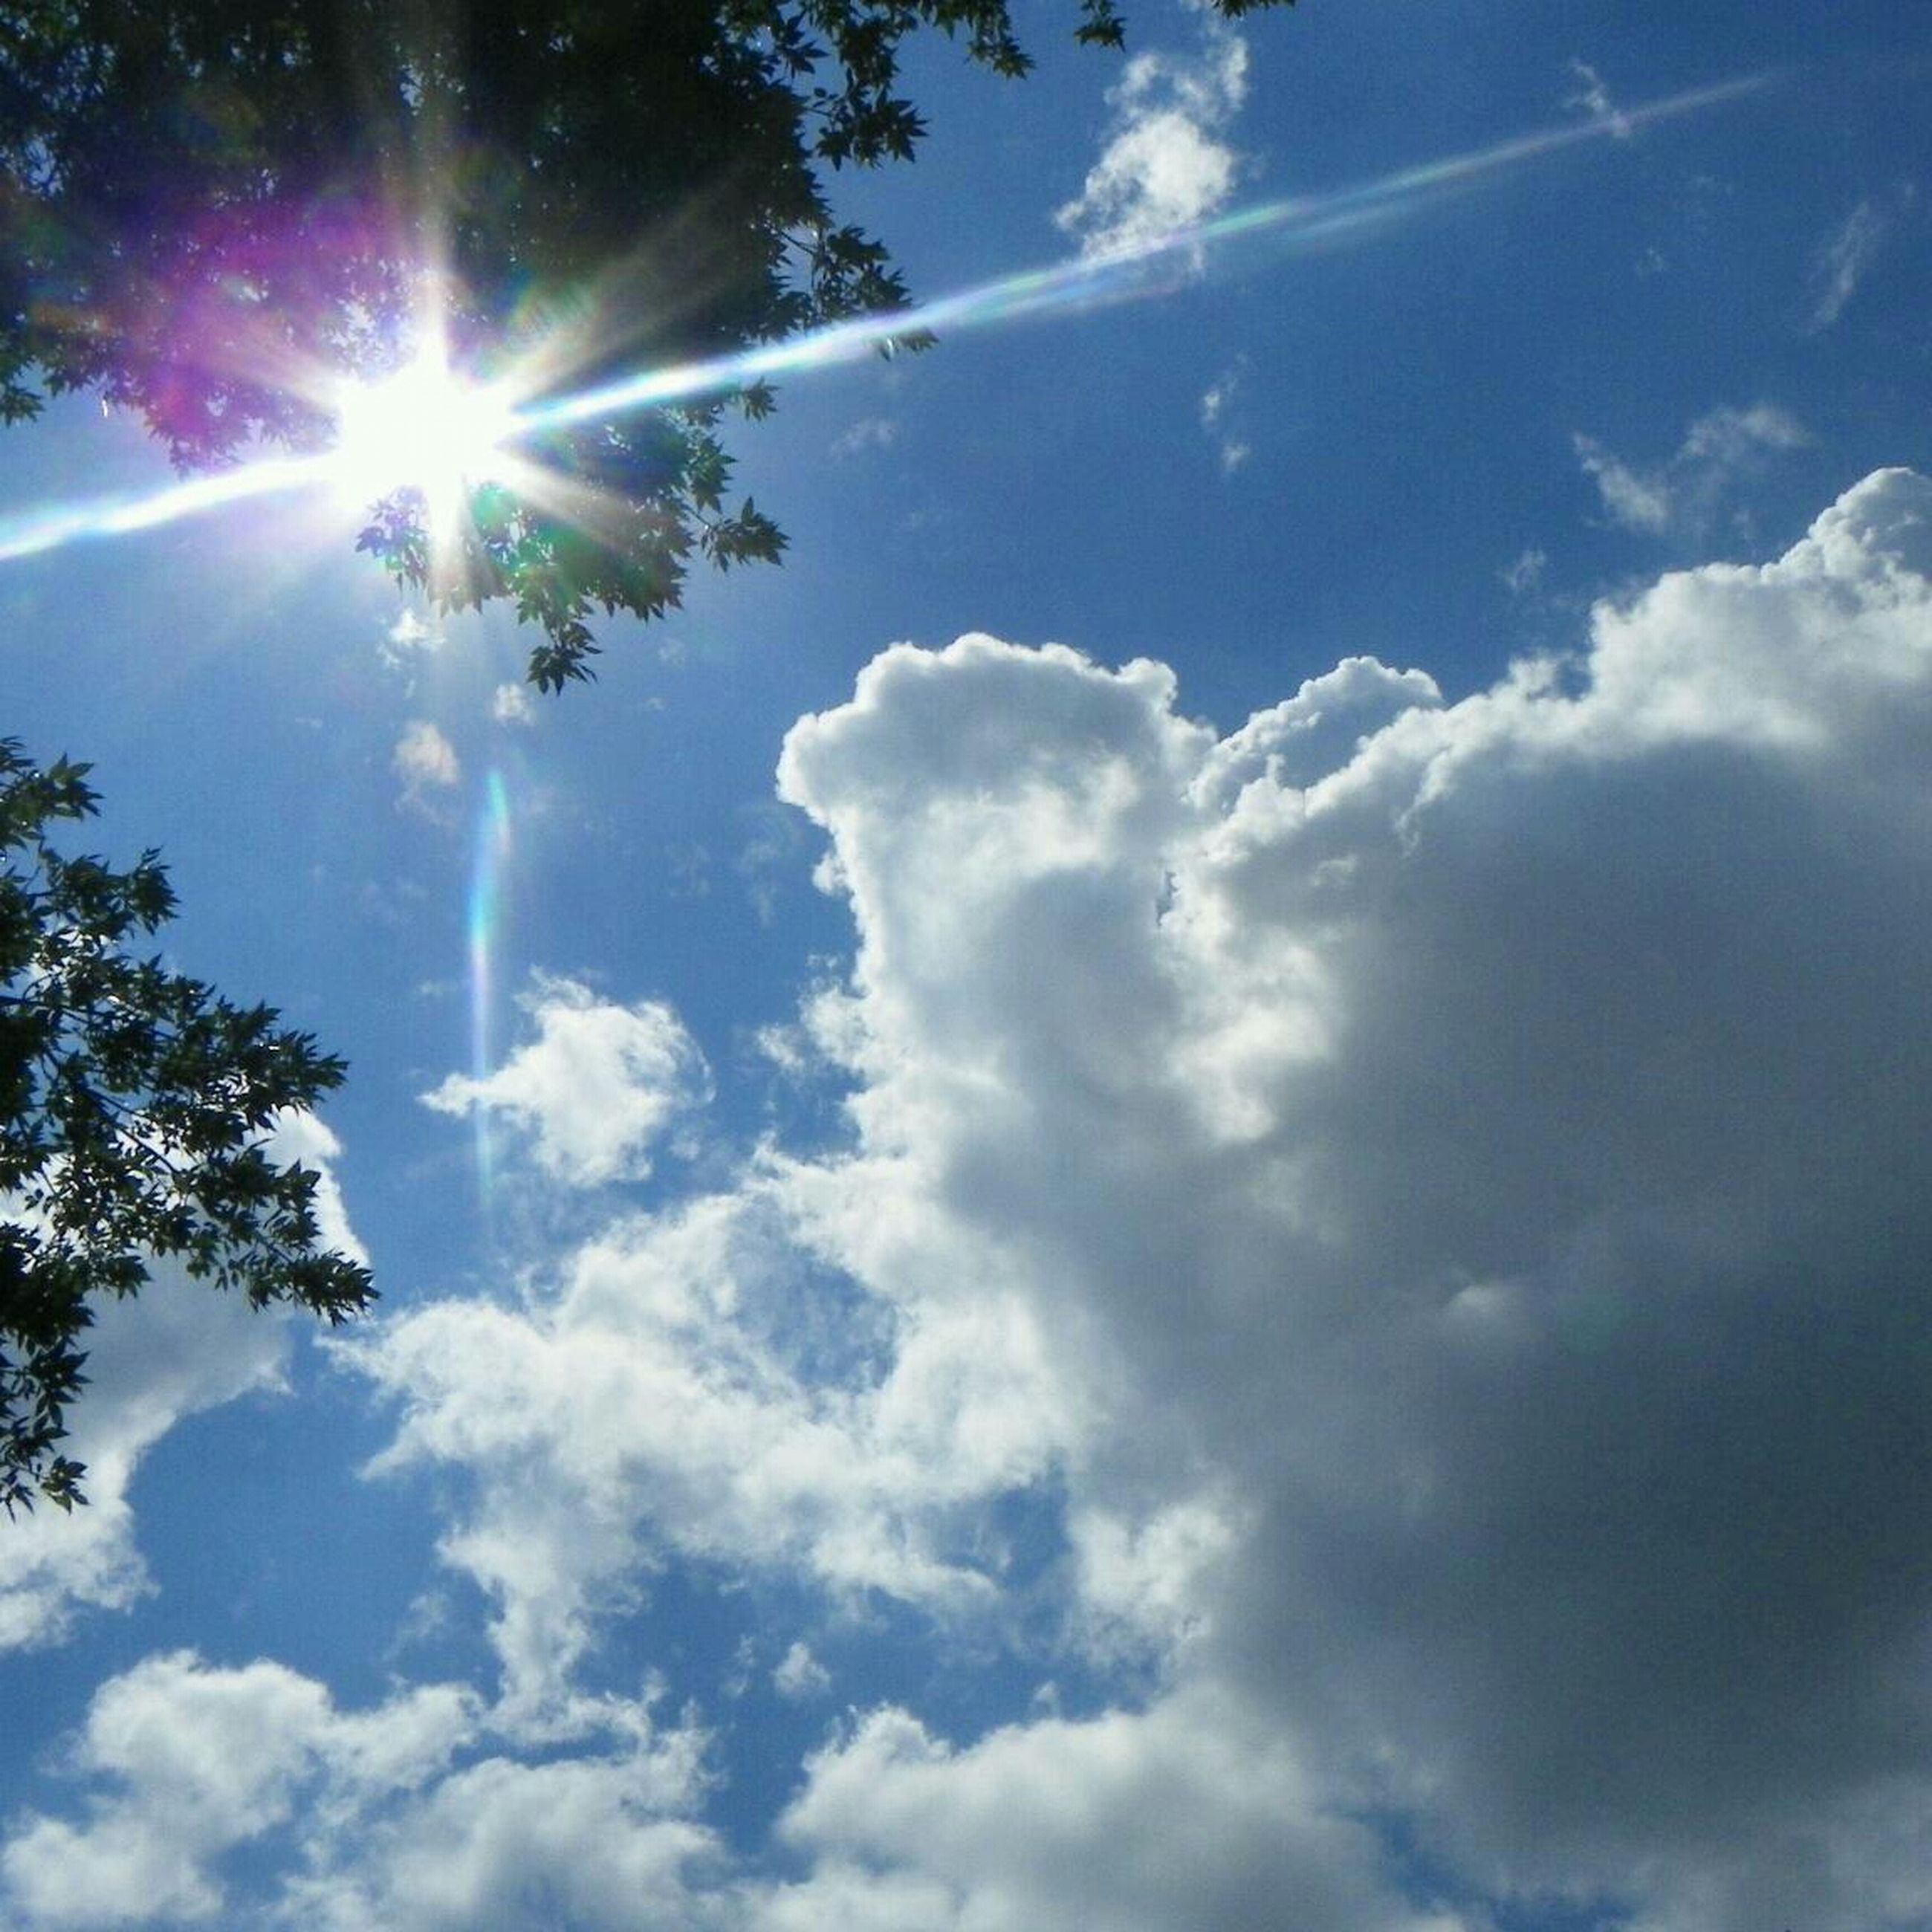 sun, sunbeam, sky, sunlight, lens flare, low angle view, beauty in nature, cloud - sky, tranquility, bright, sunny, nature, scenics, tranquil scene, blue, cloud, idyllic, day, tree, outdoors